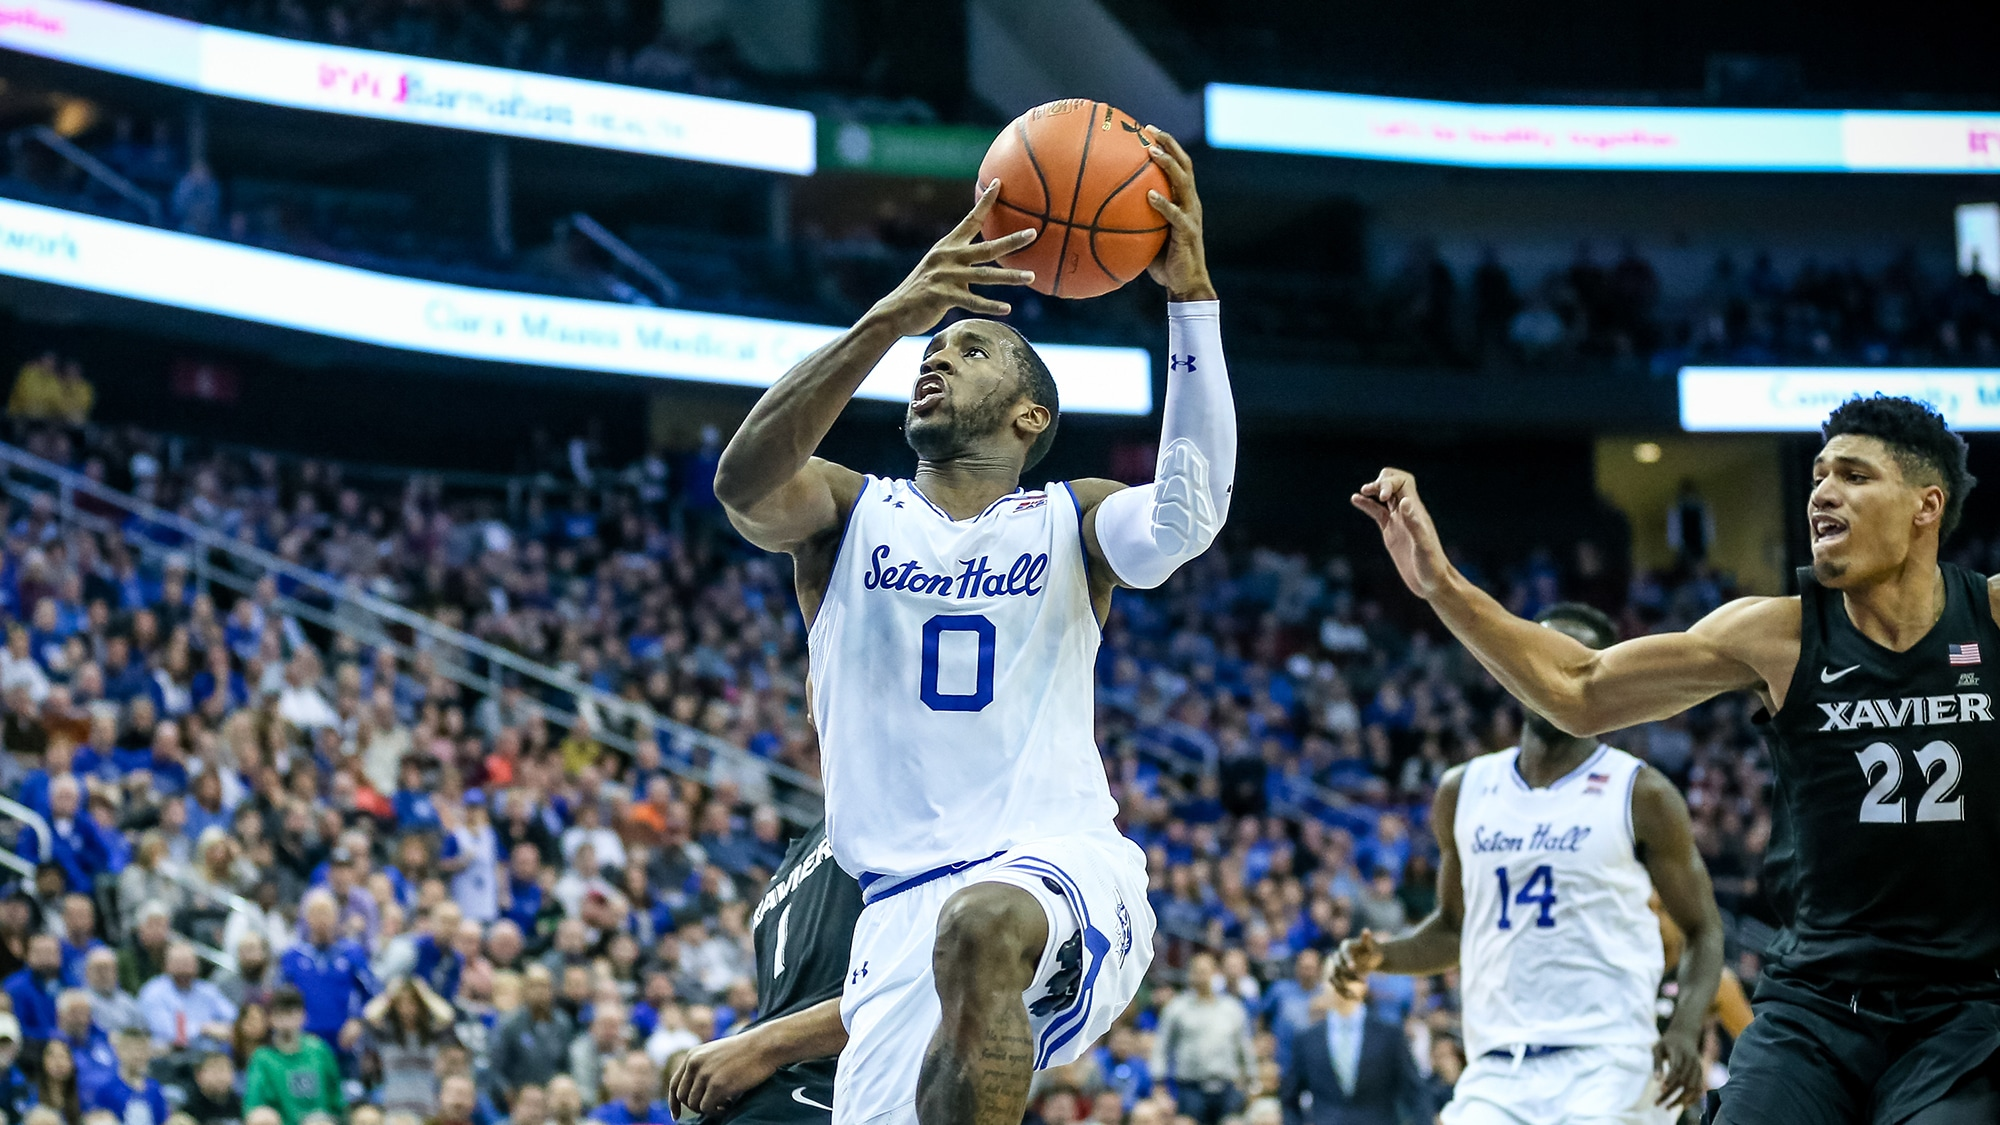 Seton Hall Pirates at DePaul Blue Demons Betting Pick & Preview 12/30/19